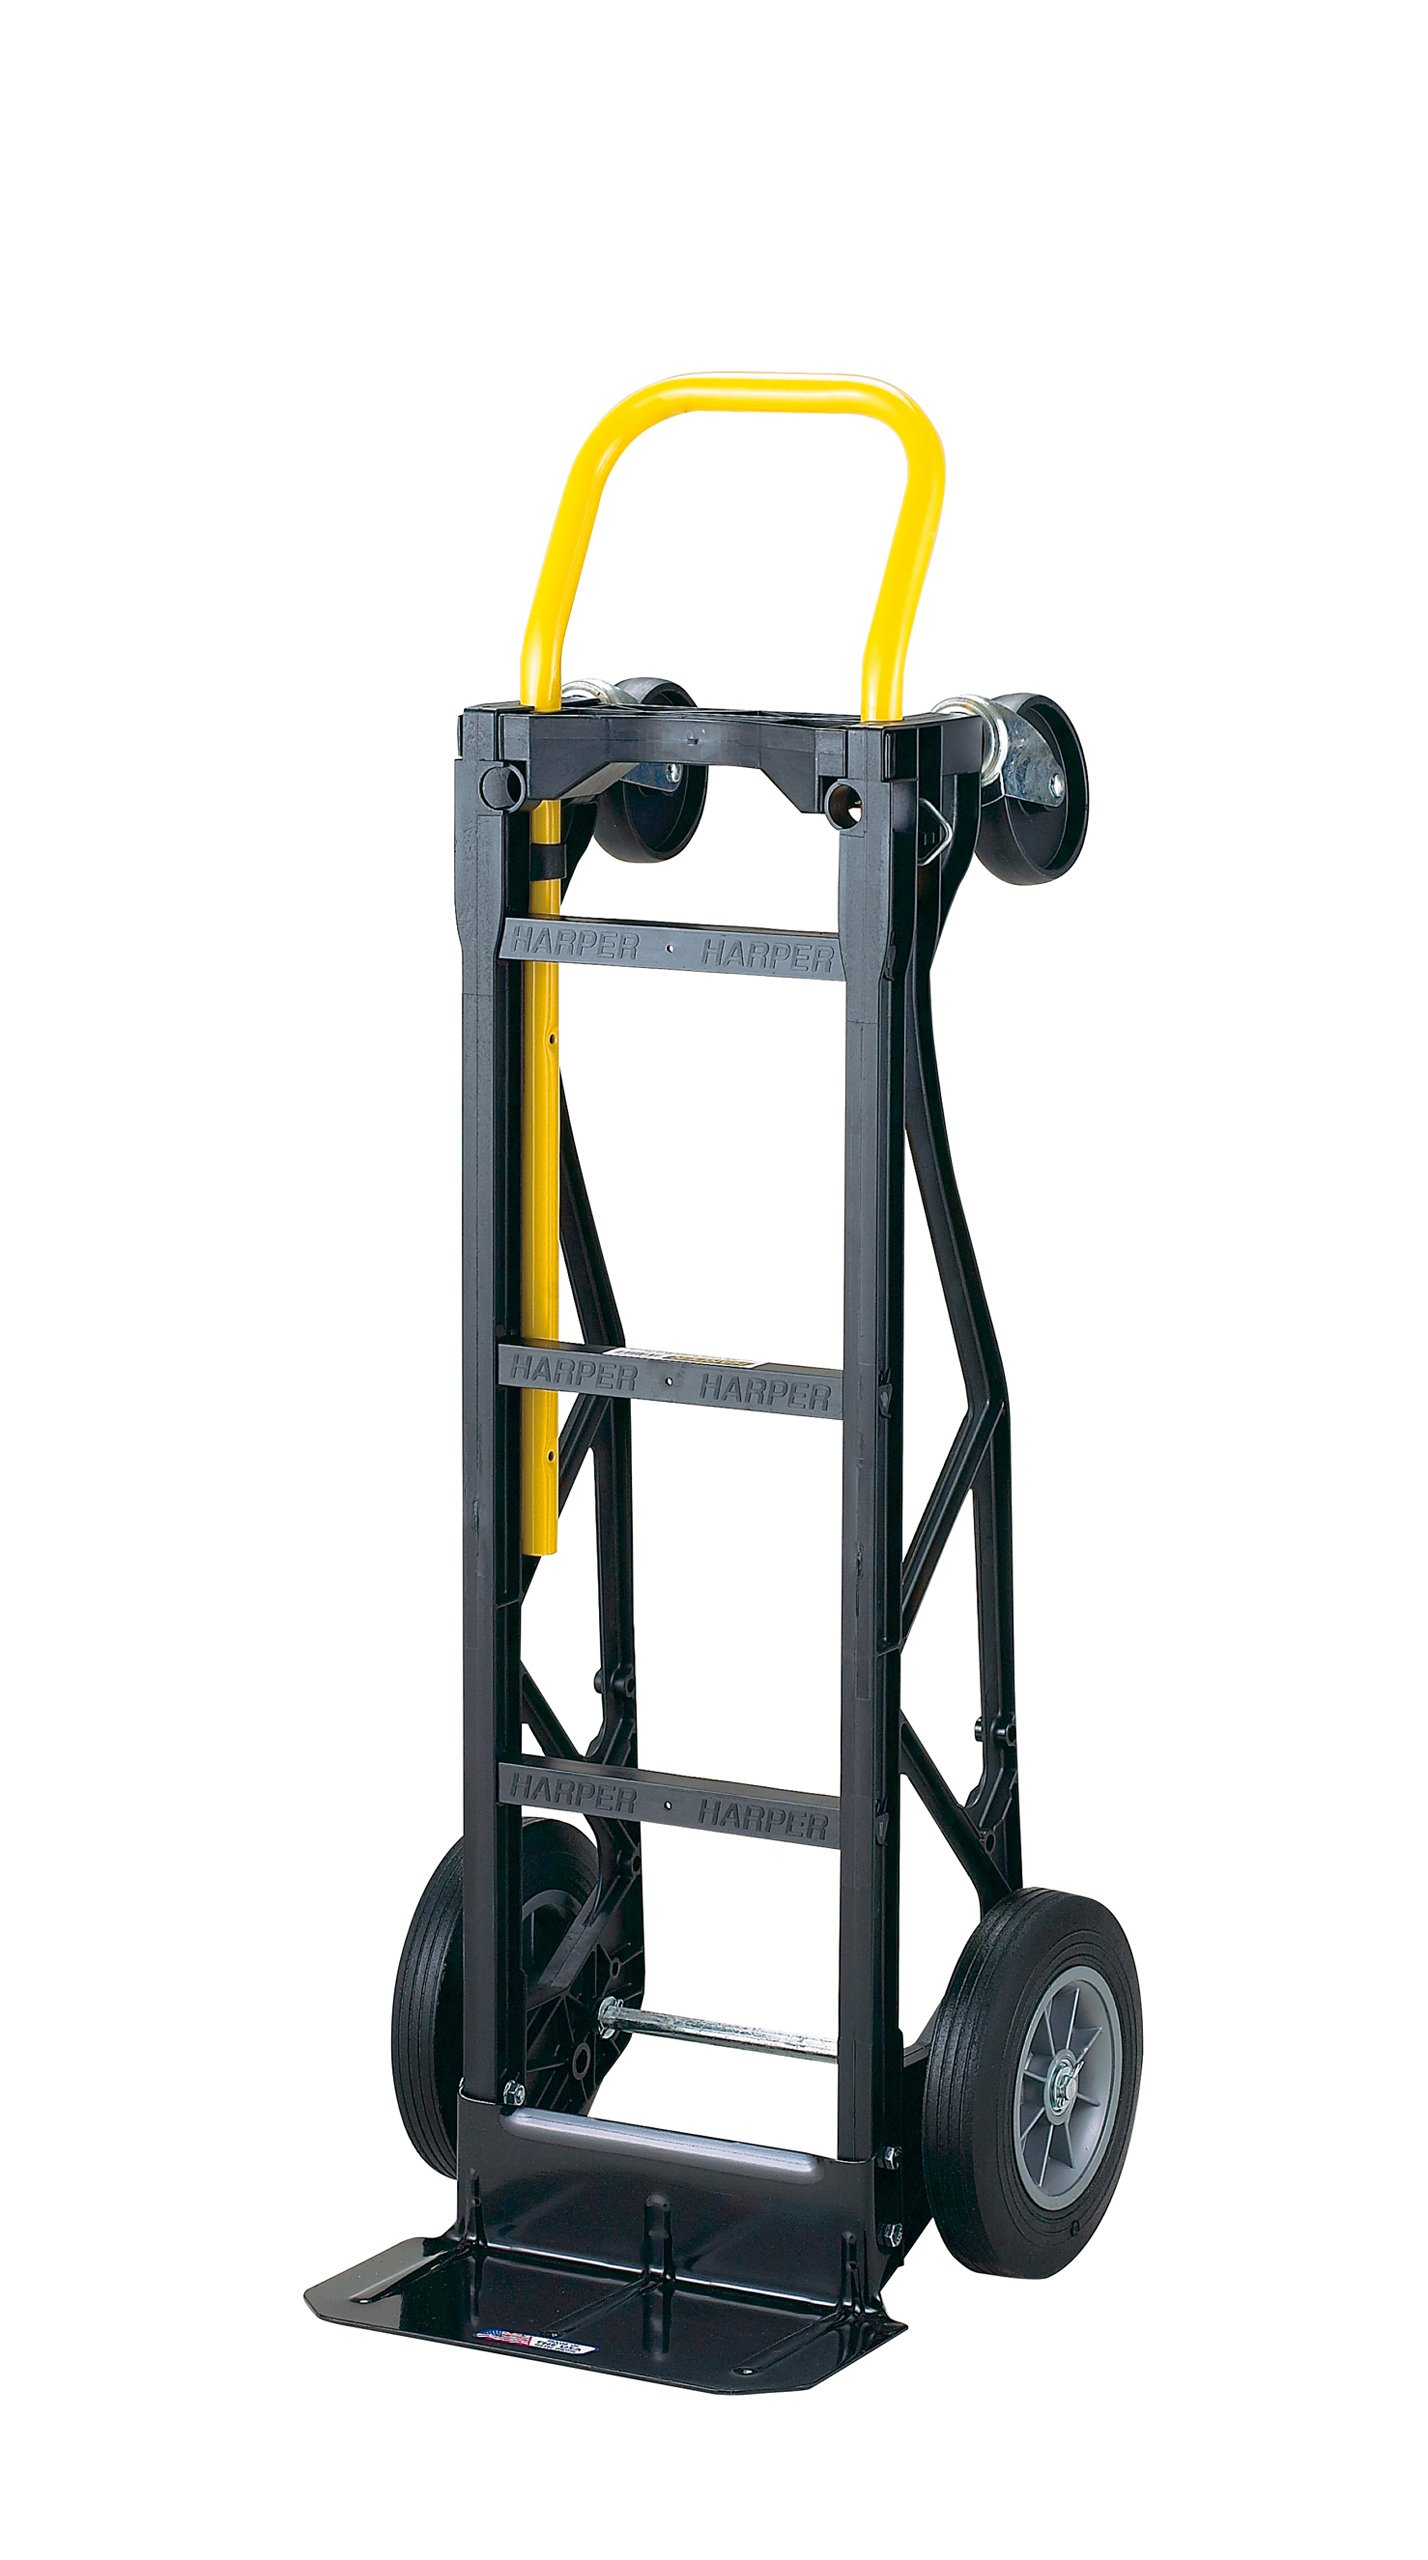 Harper Trucks 700 lb Capacity Glass Filled Nylon Convertible Hand Truck and Dolly with 10'' Flat-Free Solid Rubber  Wheels by Harper Trucks